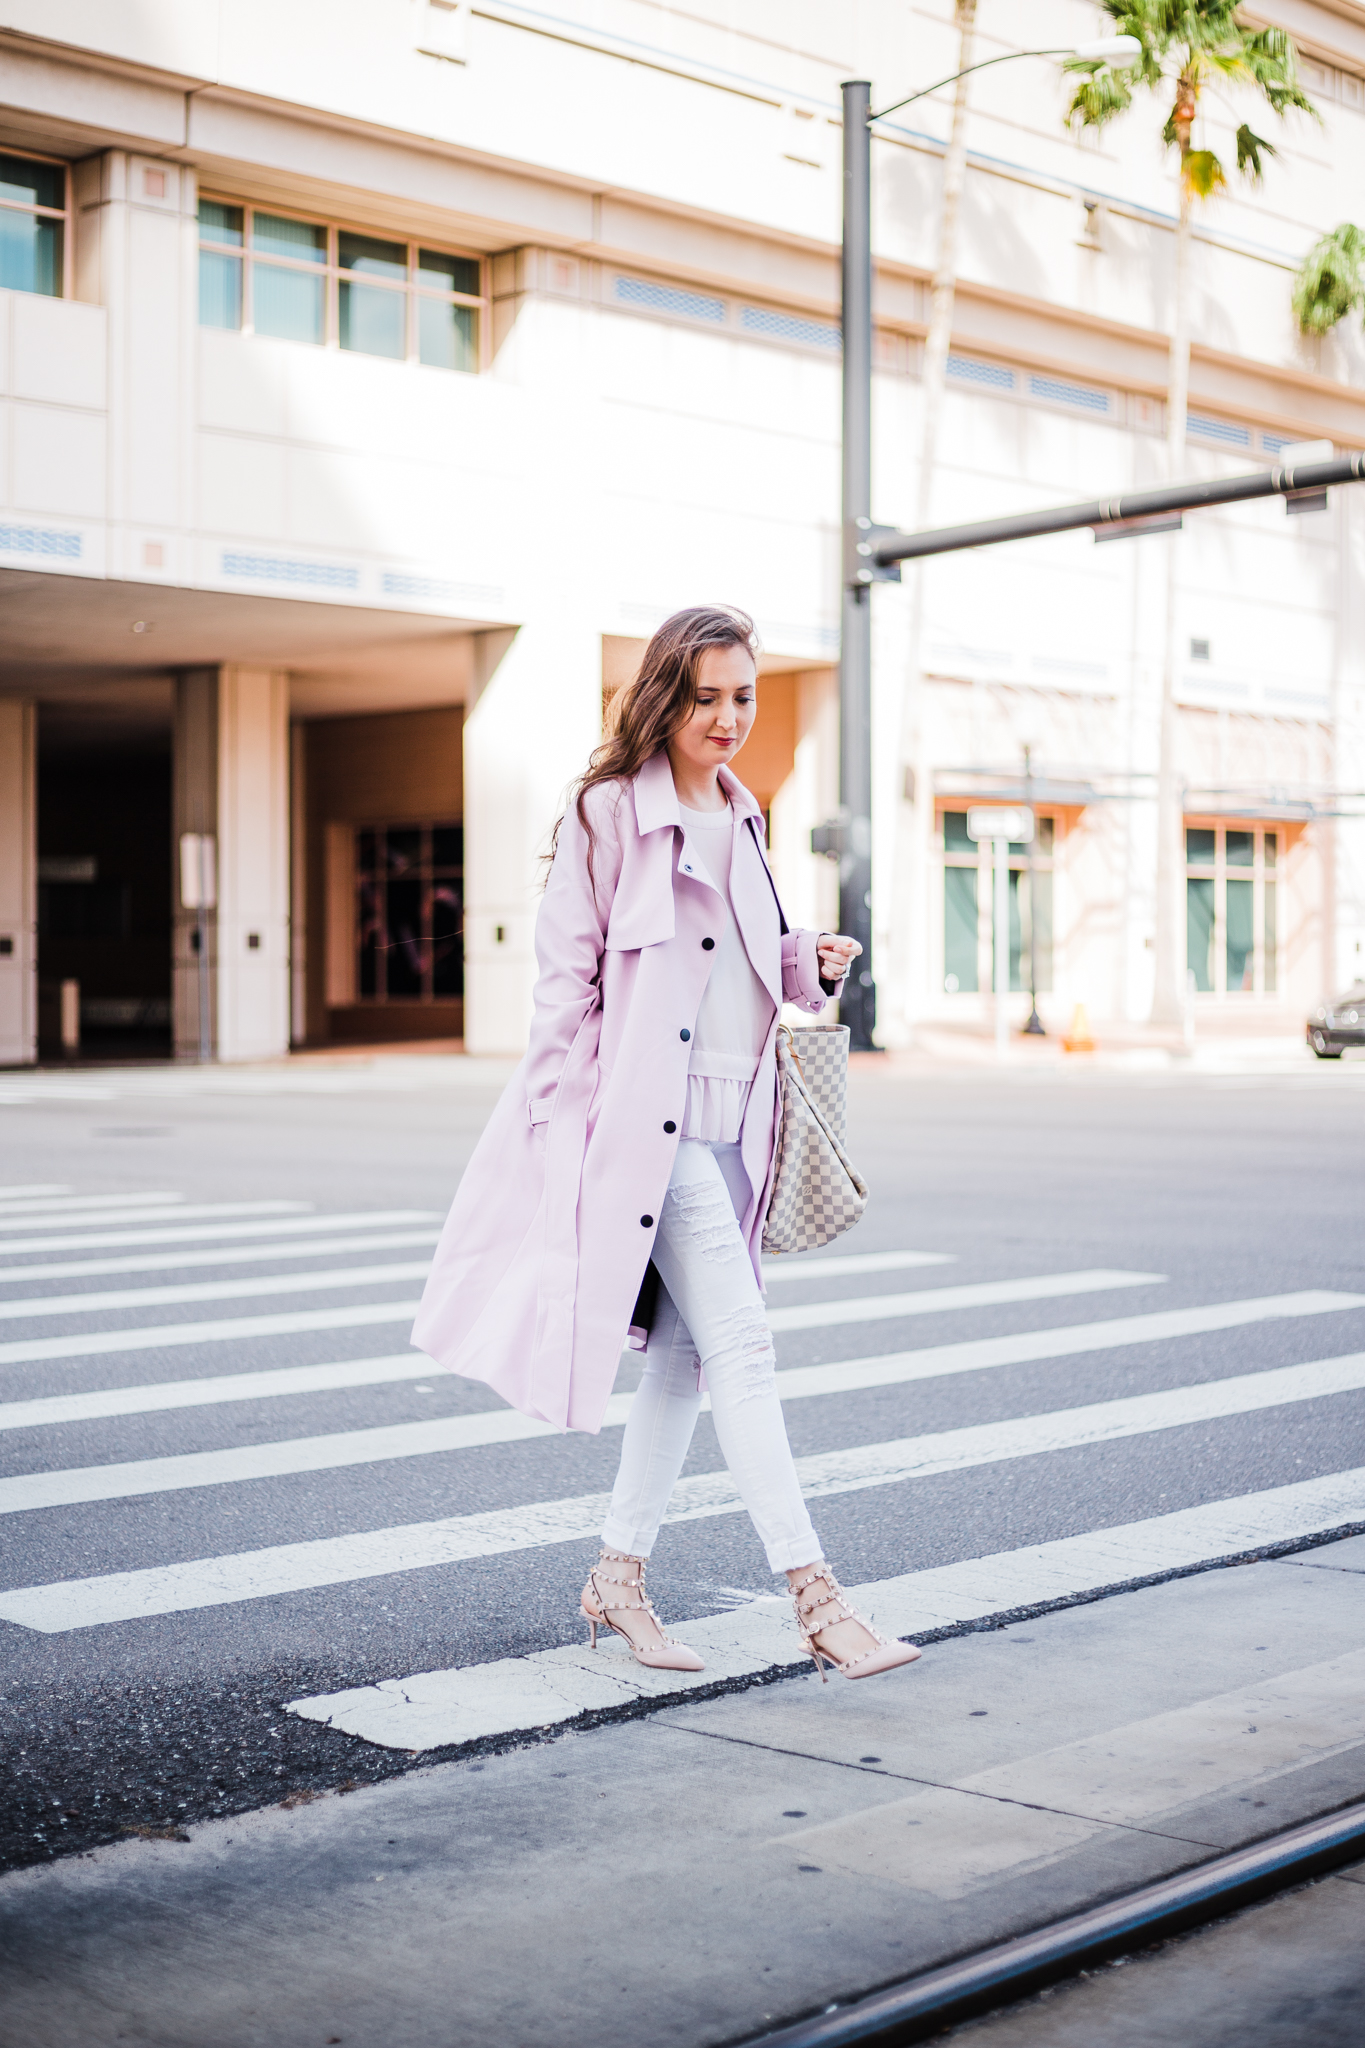 How To Style White Jeans With 5 Simple Outfits, pink trench coat